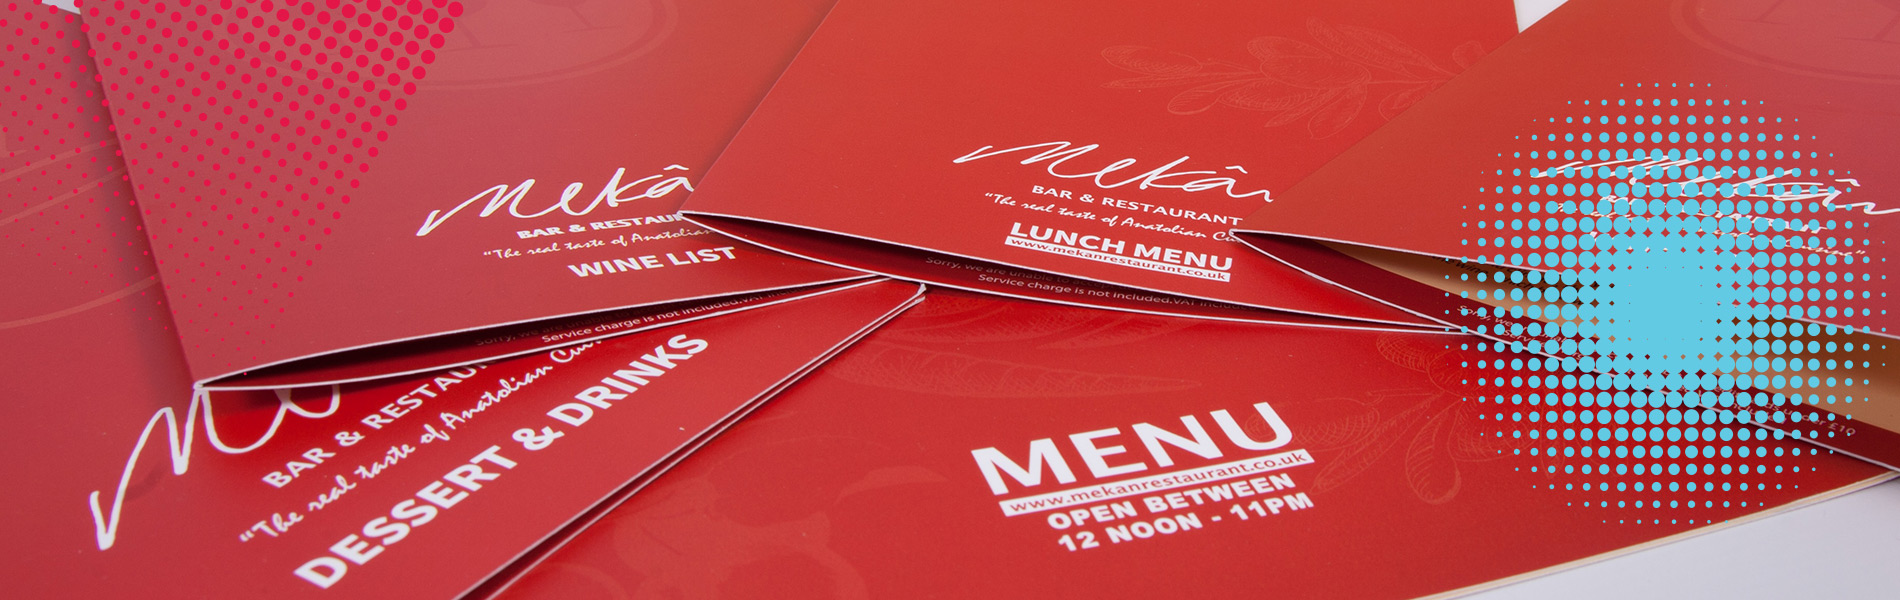 Menu-printing-in-bromley